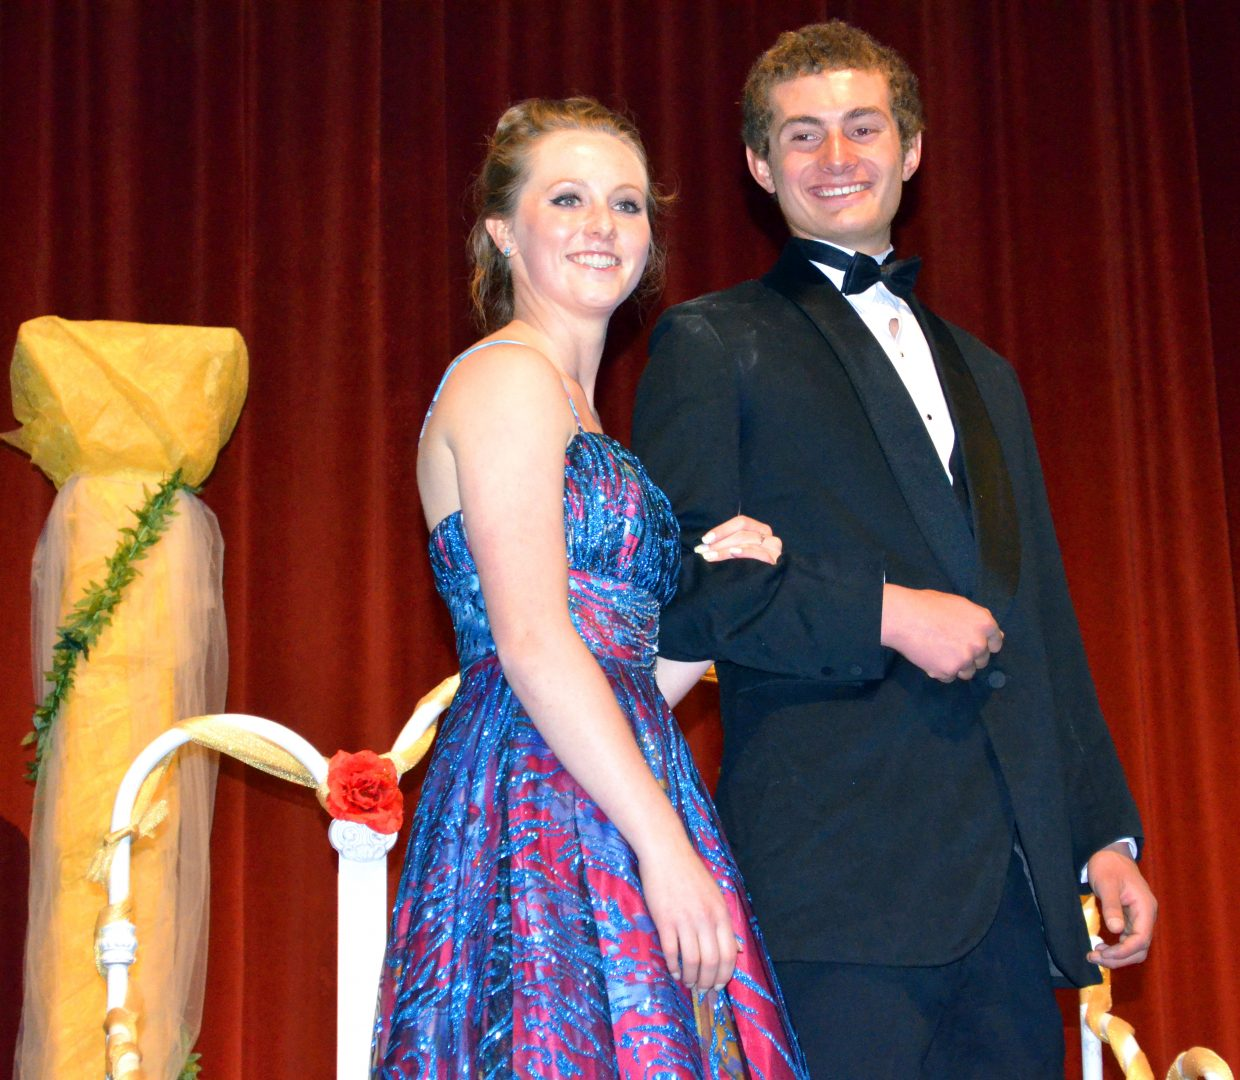 Moffat County High School's Kaylynn Haefs and Wyatt Bellio pose for pictures during the Grand March in the MCHS auditorium as part of Saturday night's prom.